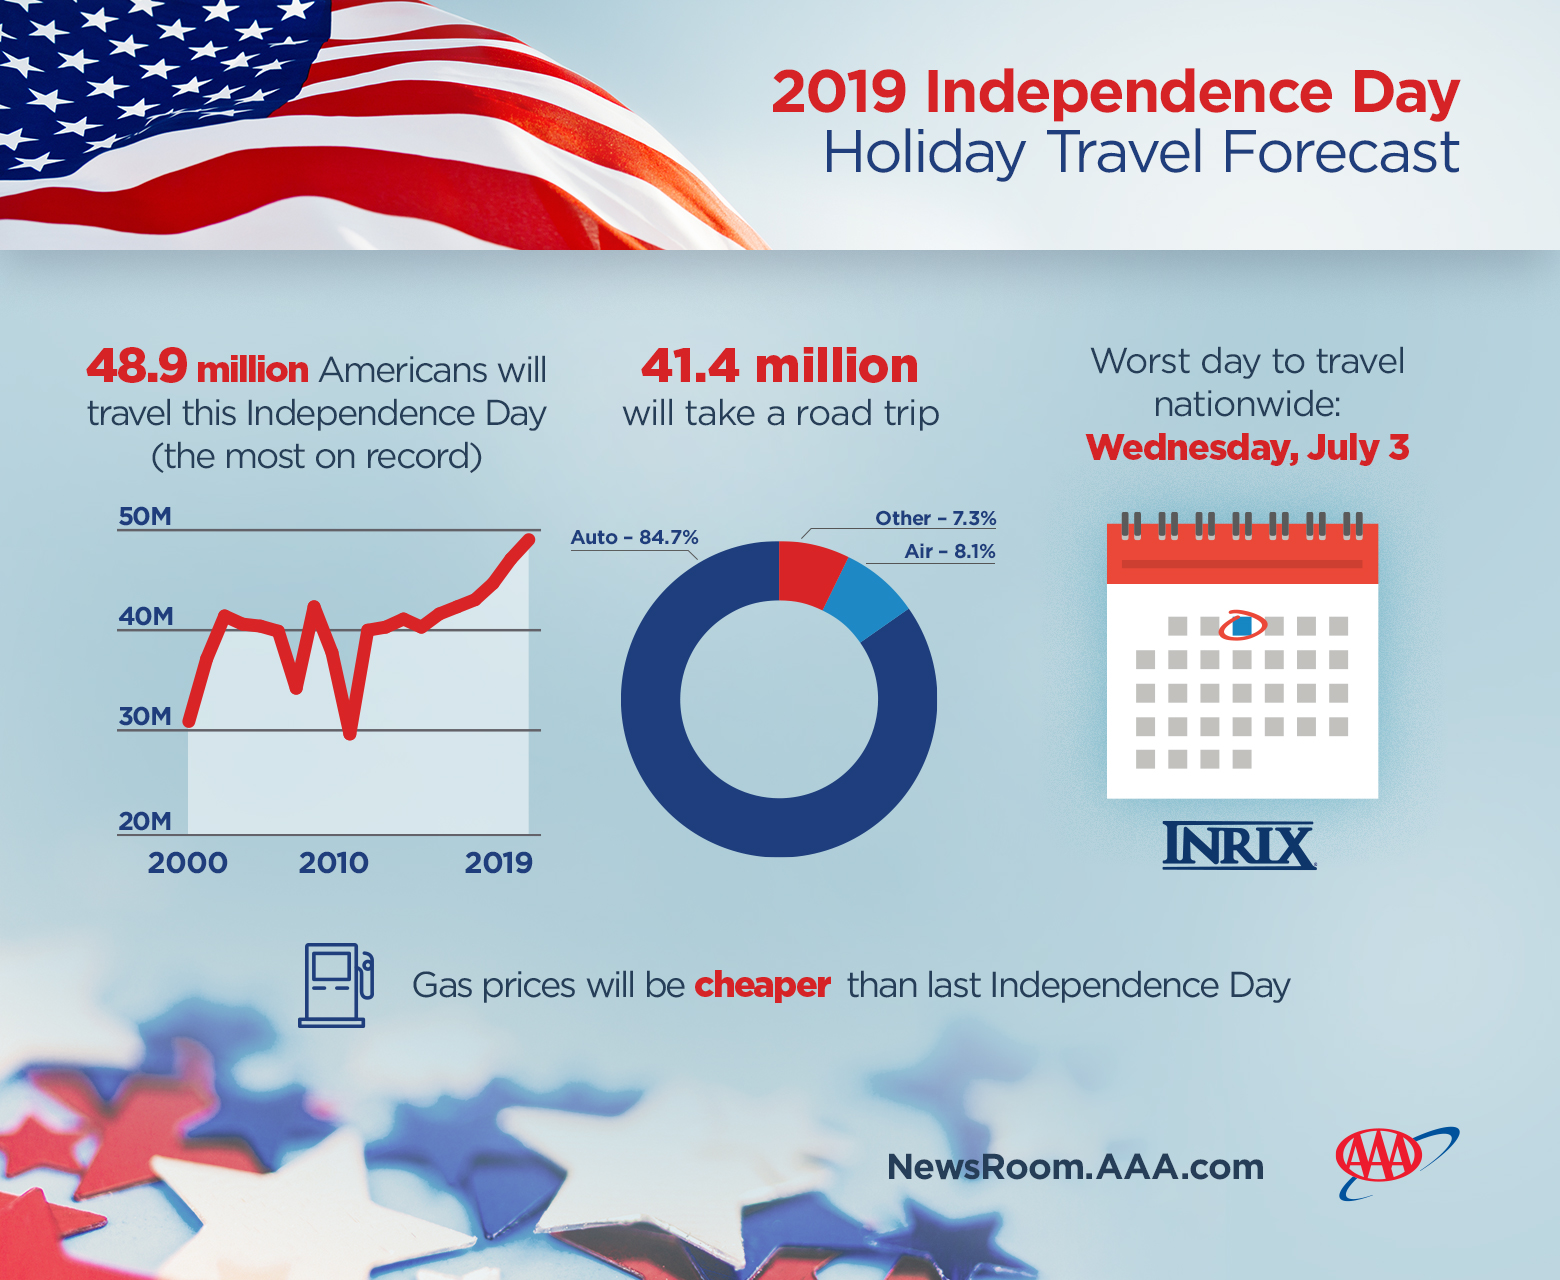 Independence Day Travel Forecast